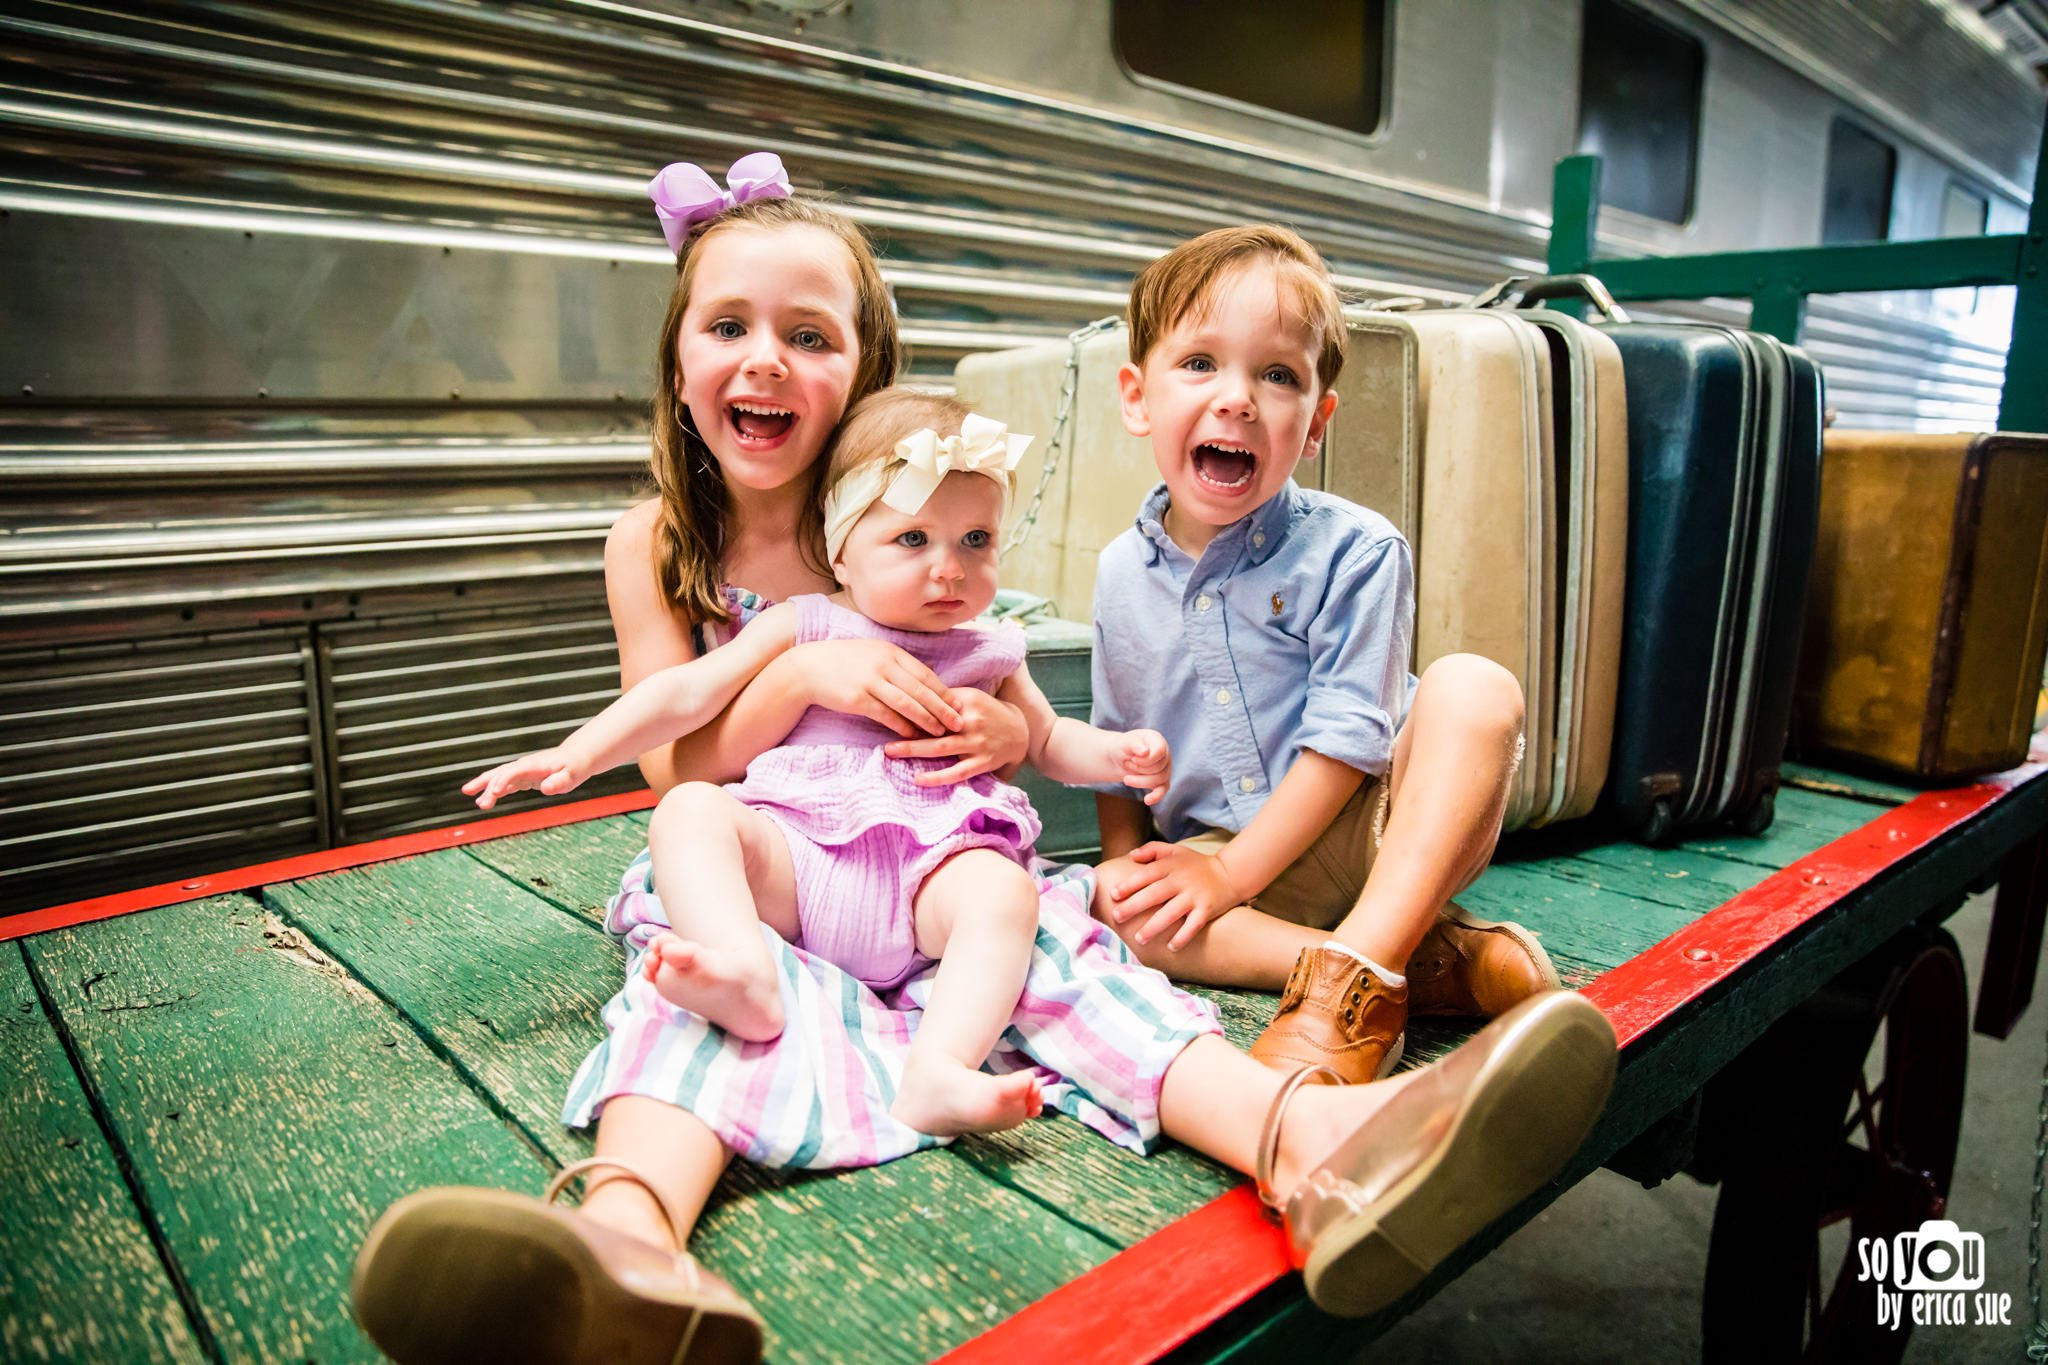 so-you-by-erica-sue-gold-coast-railroad-museum-miami-family-photo-shoot-session-7255.JPG